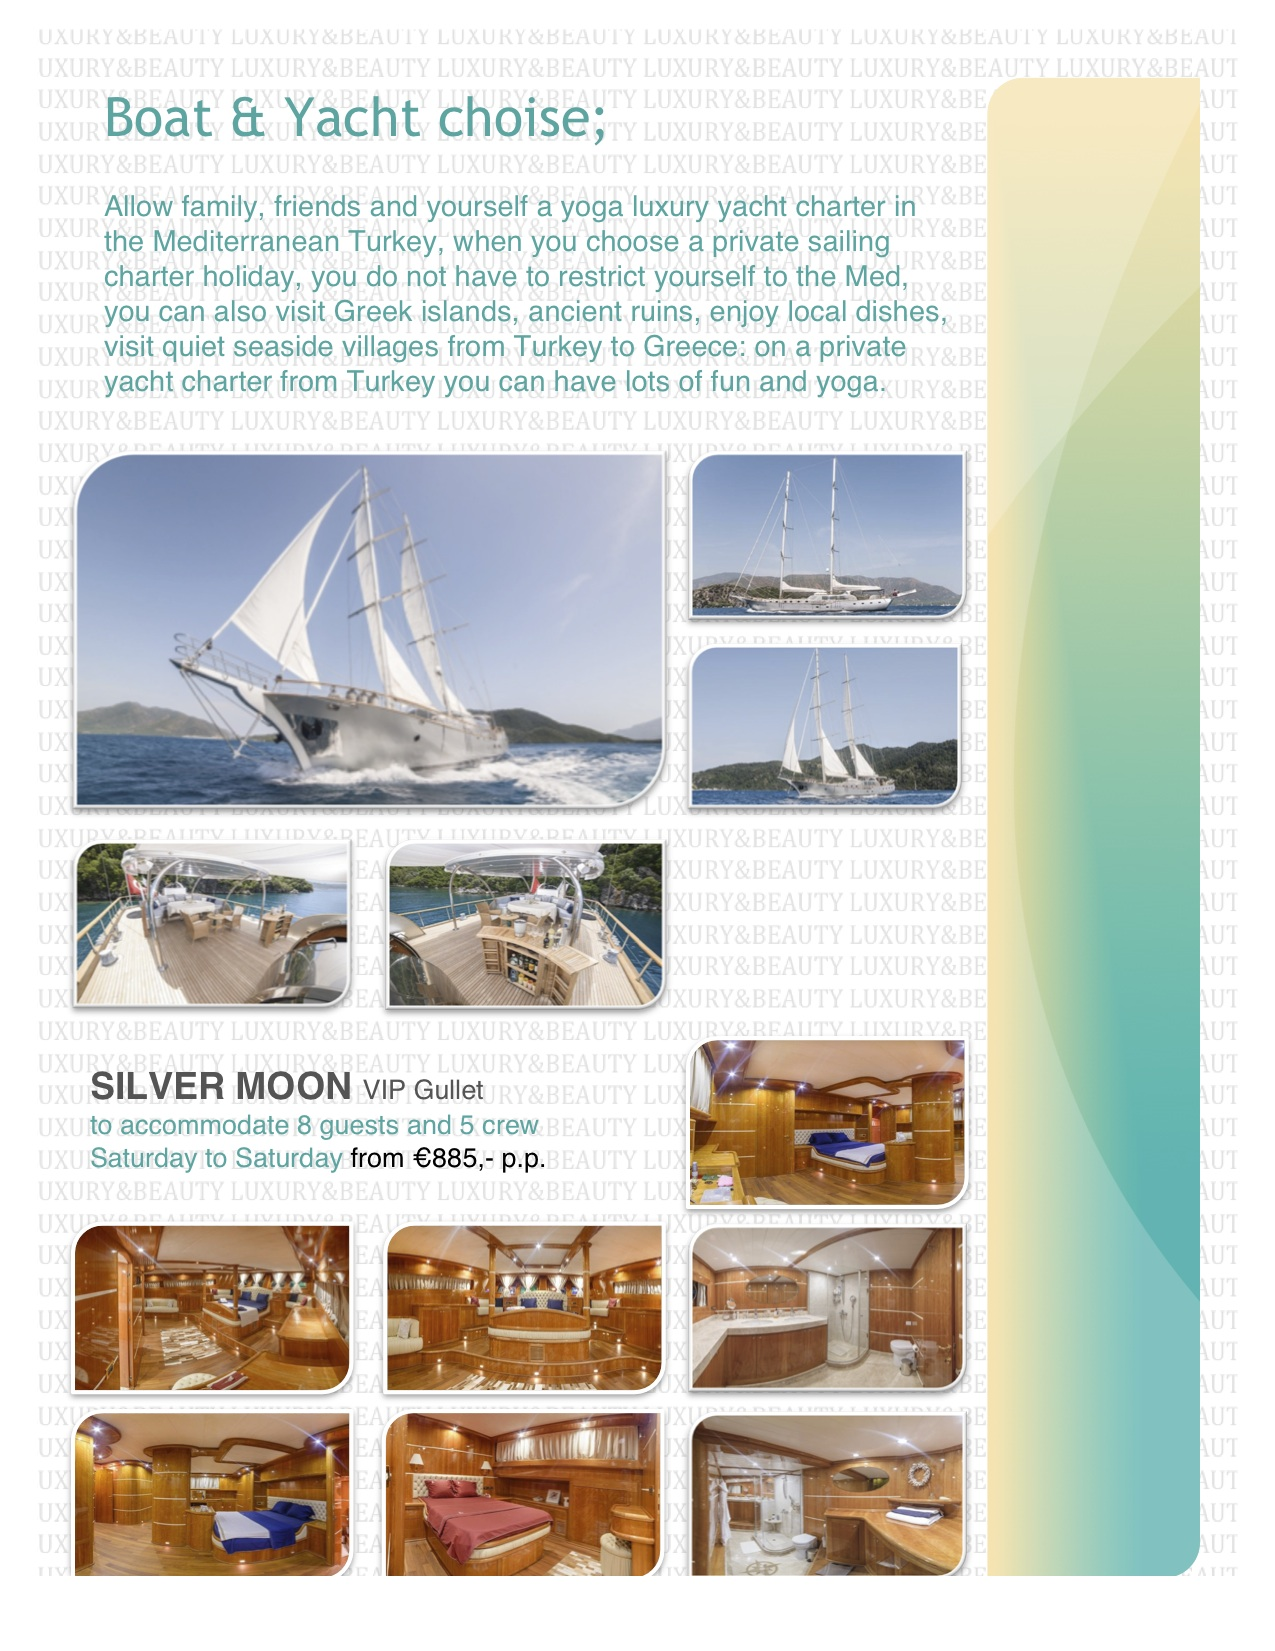 Luxury&Beauty_Yoga_Yacht.jpg9